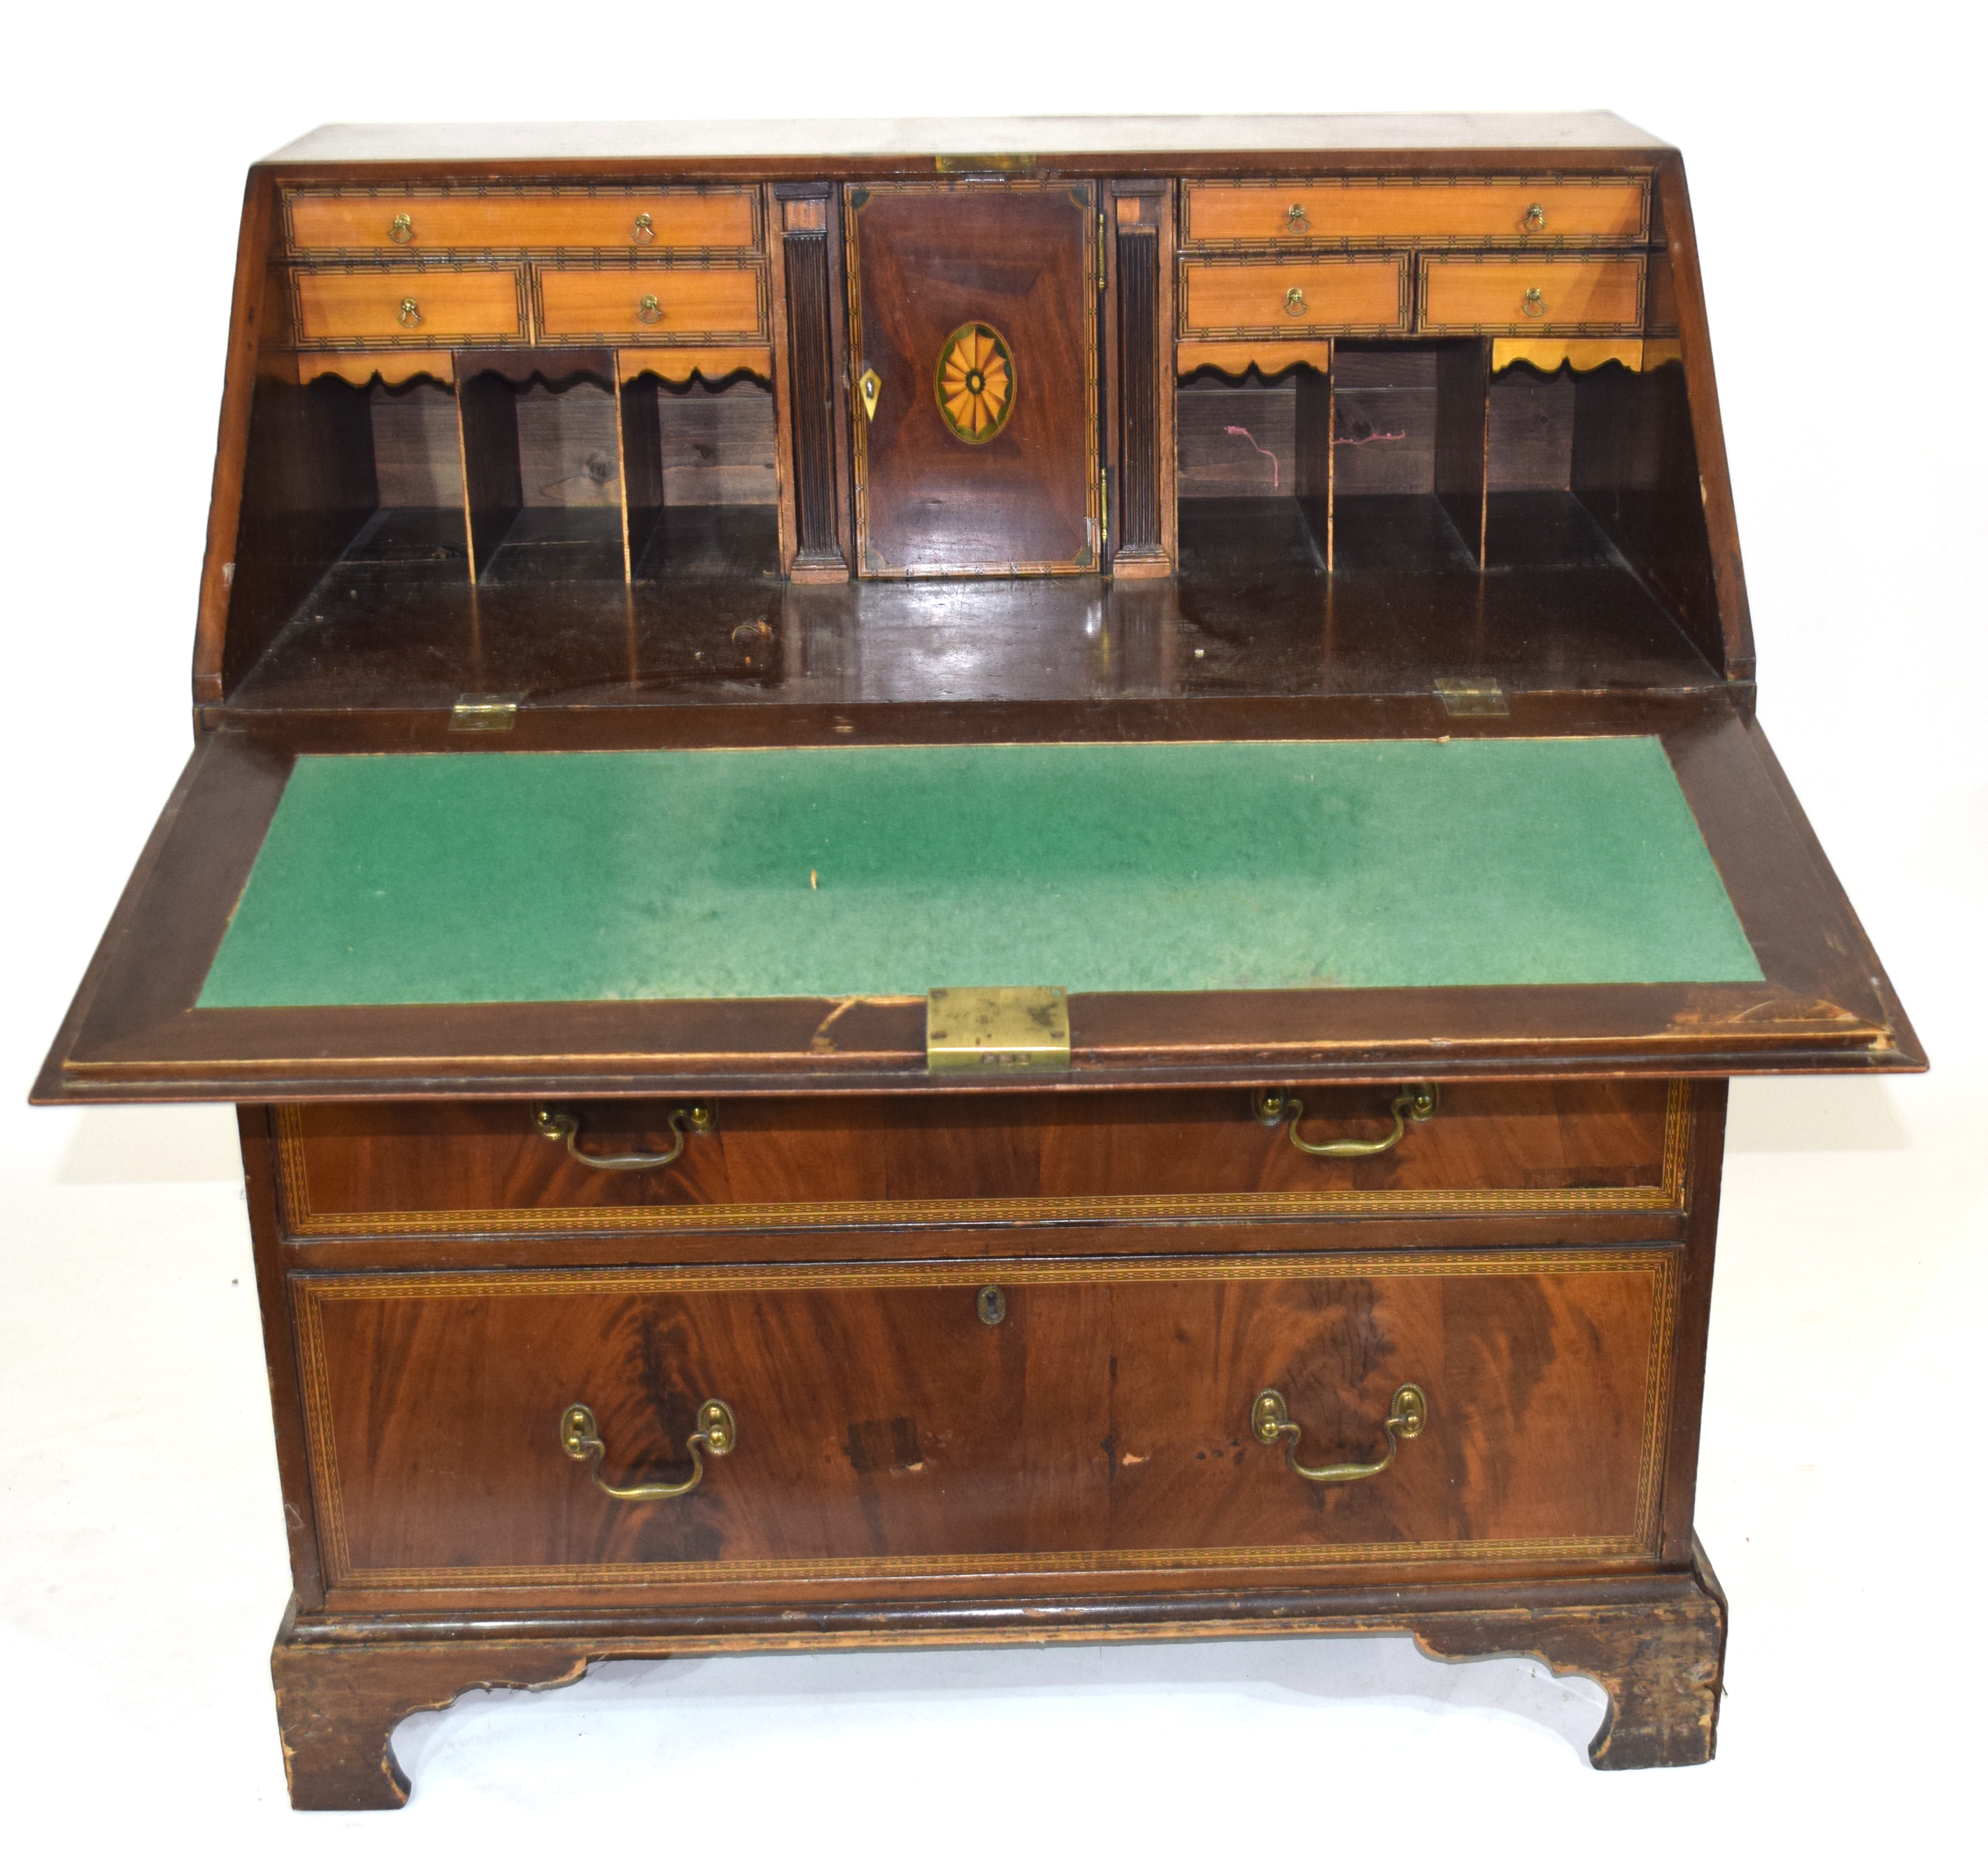 19th century fall front bureau with inlaid decoration throughout, raised on bracket feet with fitted - Image 2 of 5